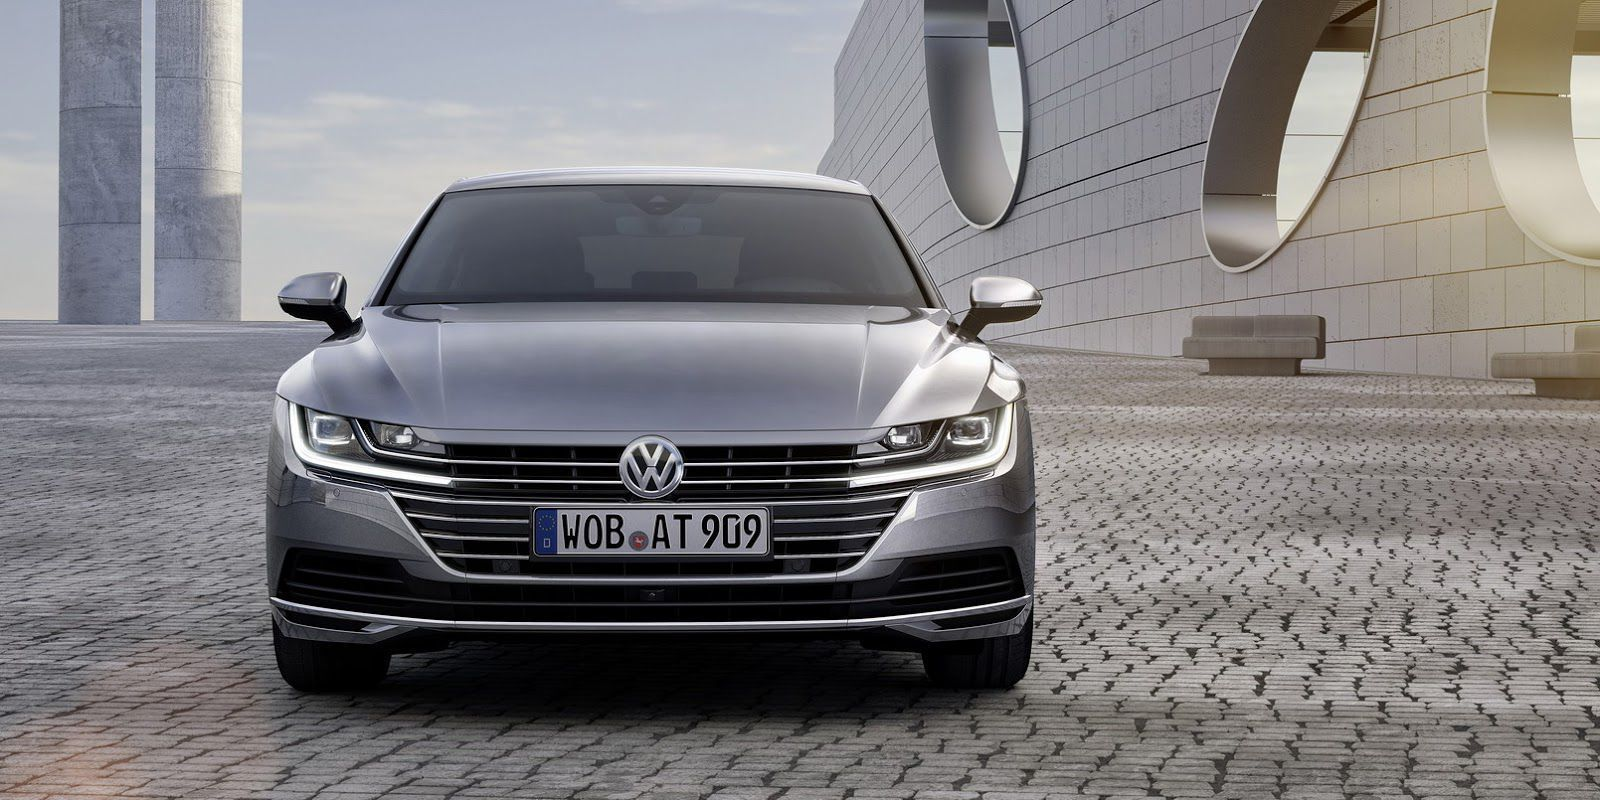 2018 grey Volkswagen Arteon 2.0 TDI 5dr sedan front view